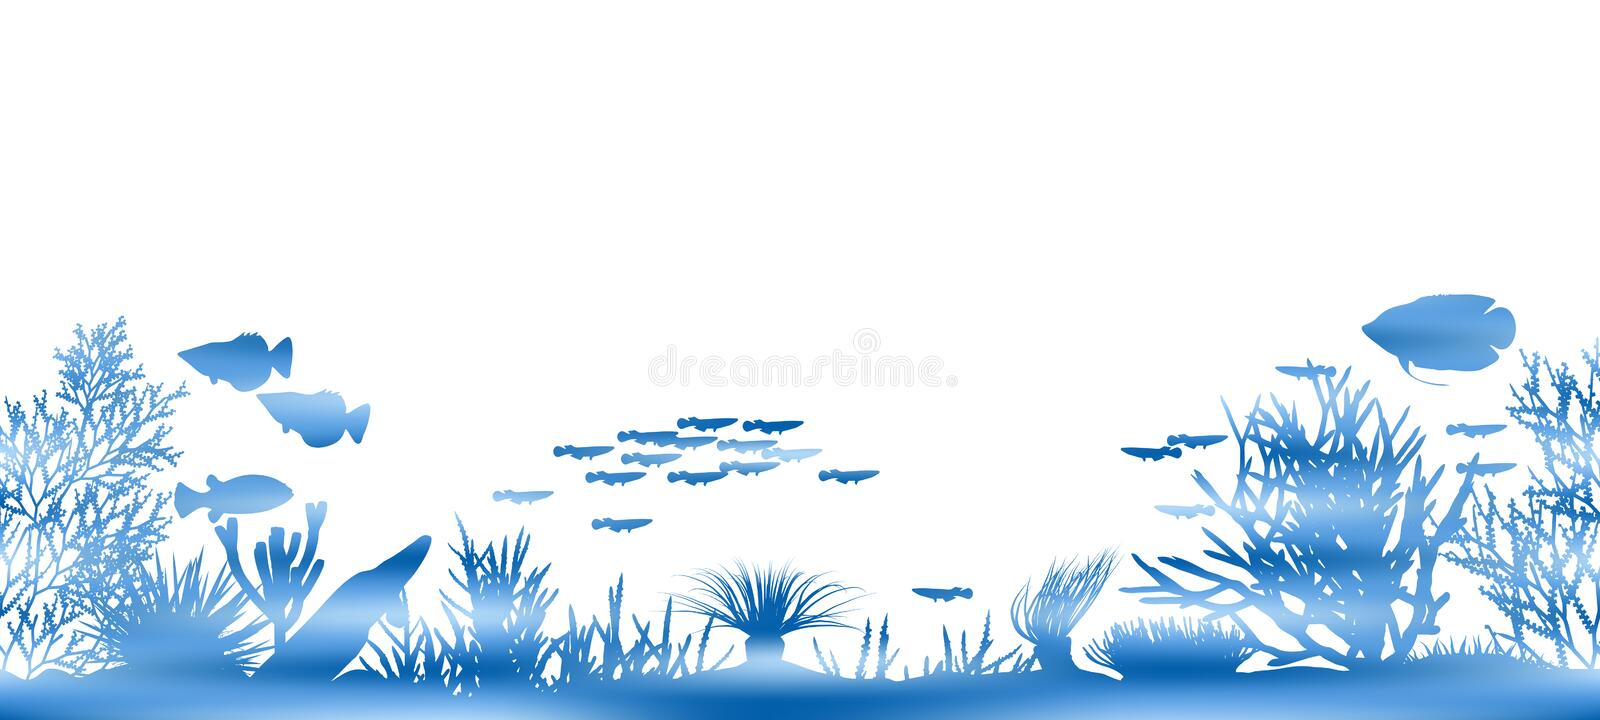 Water coral. Editable vector illustration of watery coral and fish made by masking a background color mesh royalty free illustration